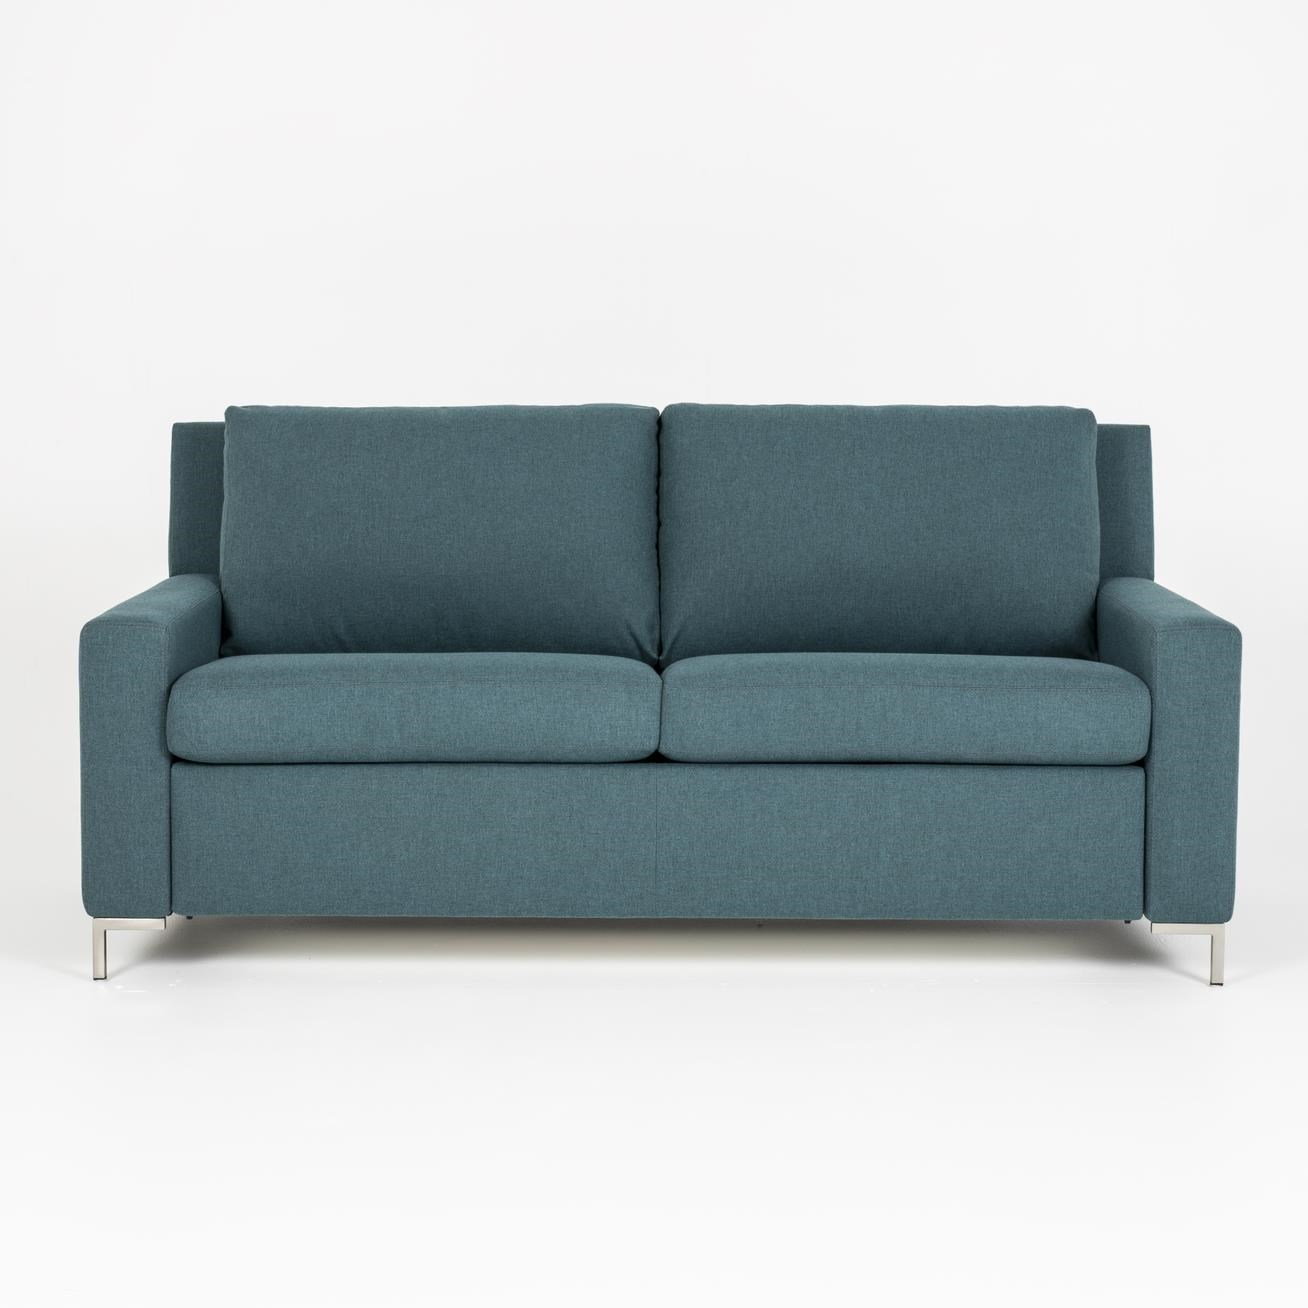 Bryson Queen Sleeper Sofa Plus by American Leather at Saugerties Furniture Mart